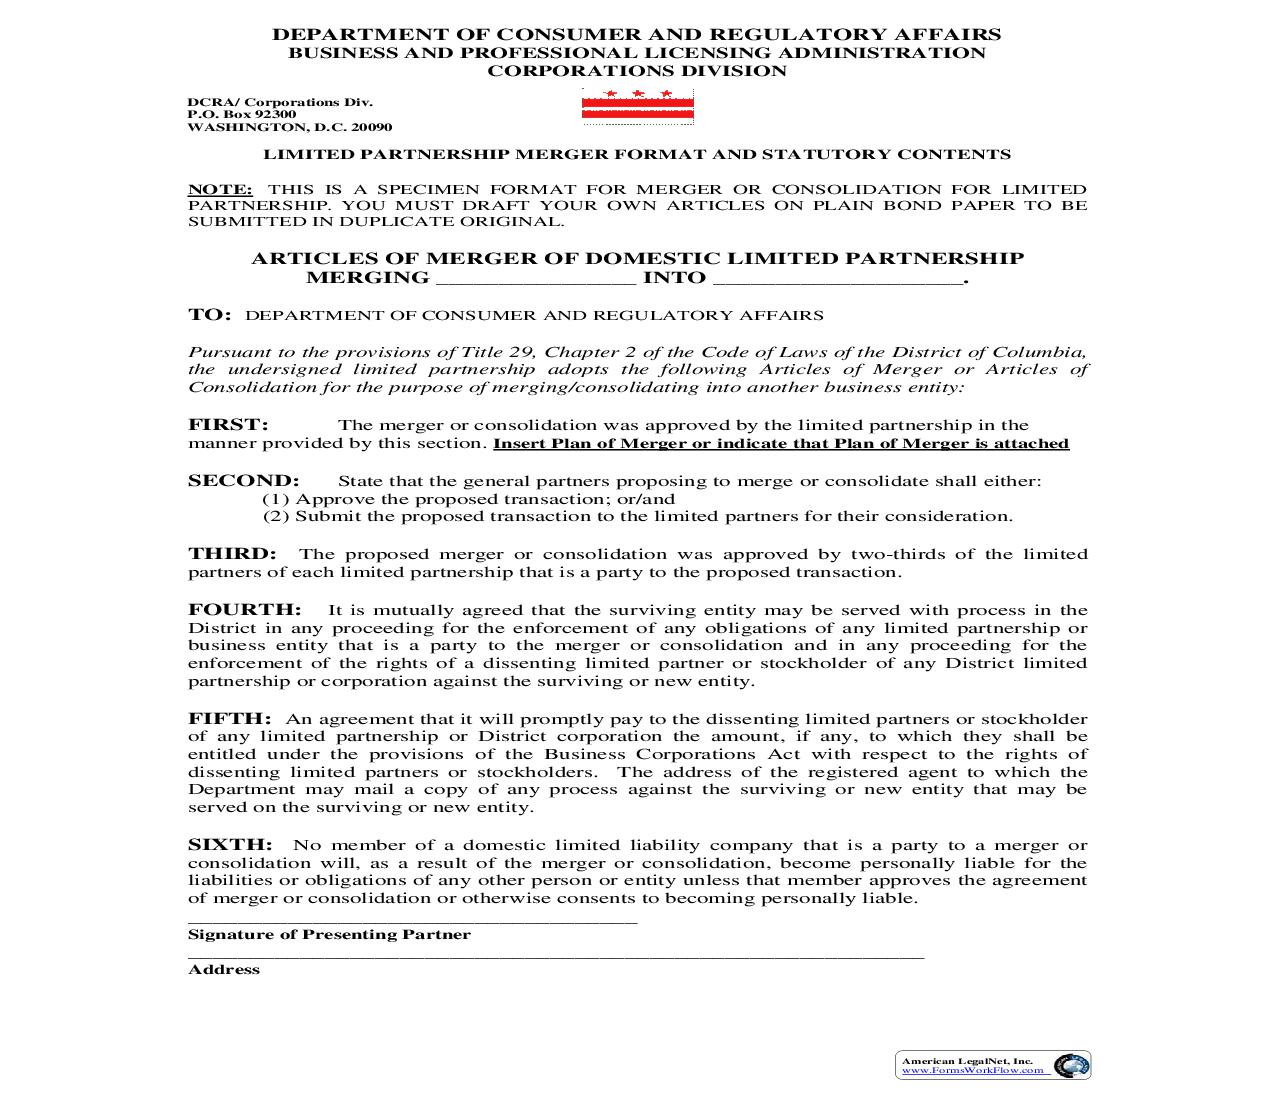 Articles Of Merger Of Domestic Limited Partnership Merging Into   Pdf Fpdf Doc Docx   District Of Columbia